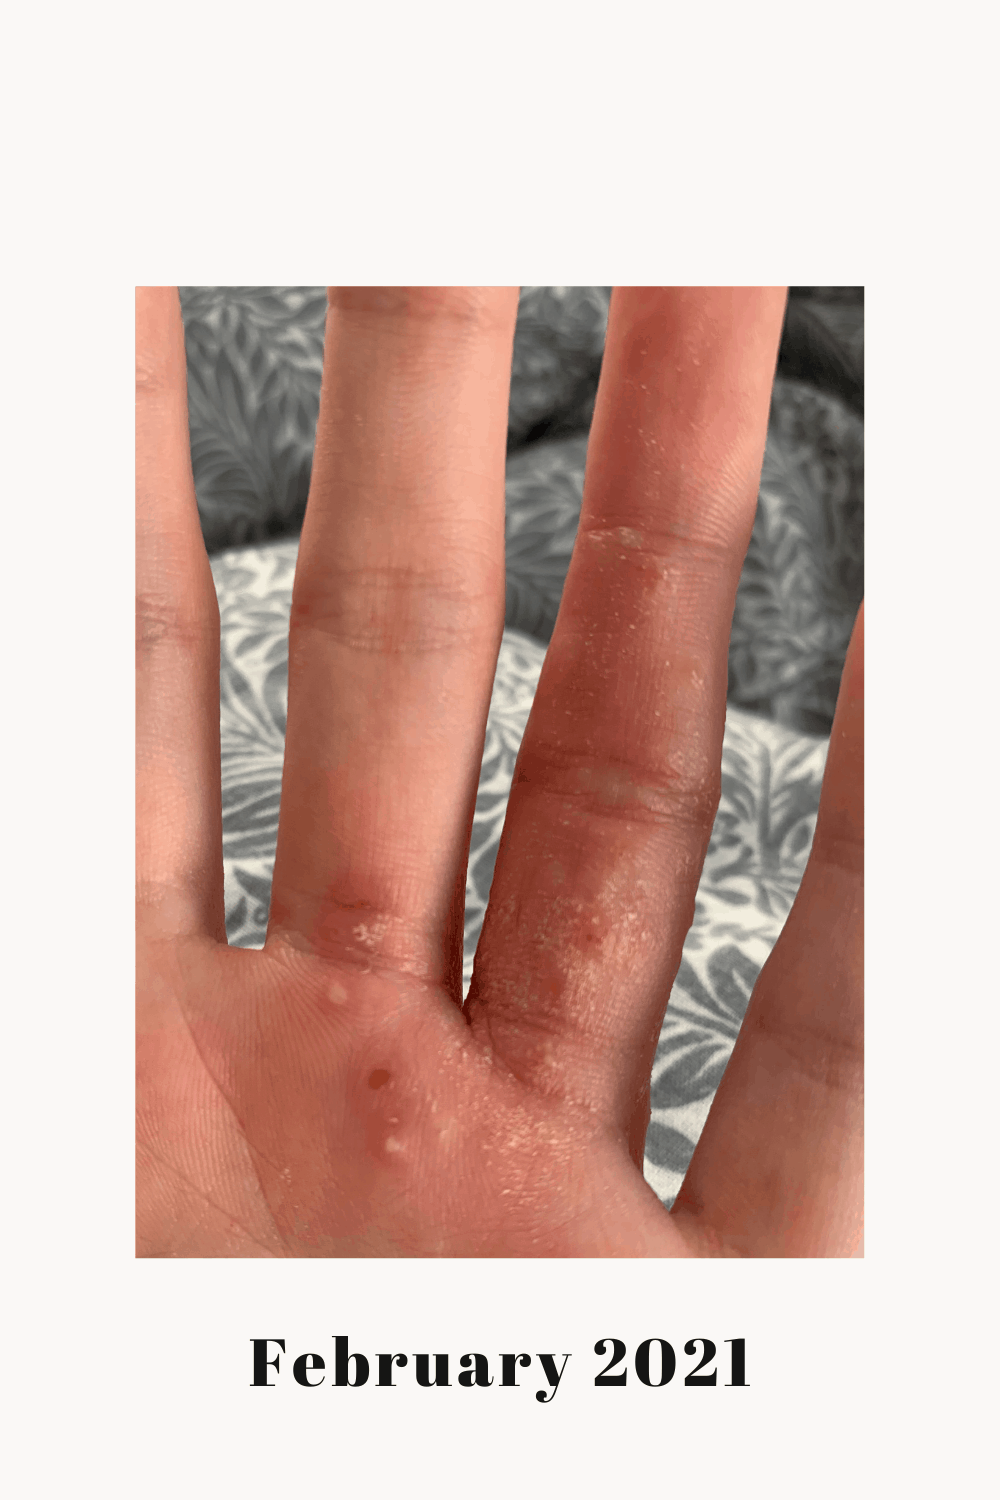 My left palm showing an eczema flare.